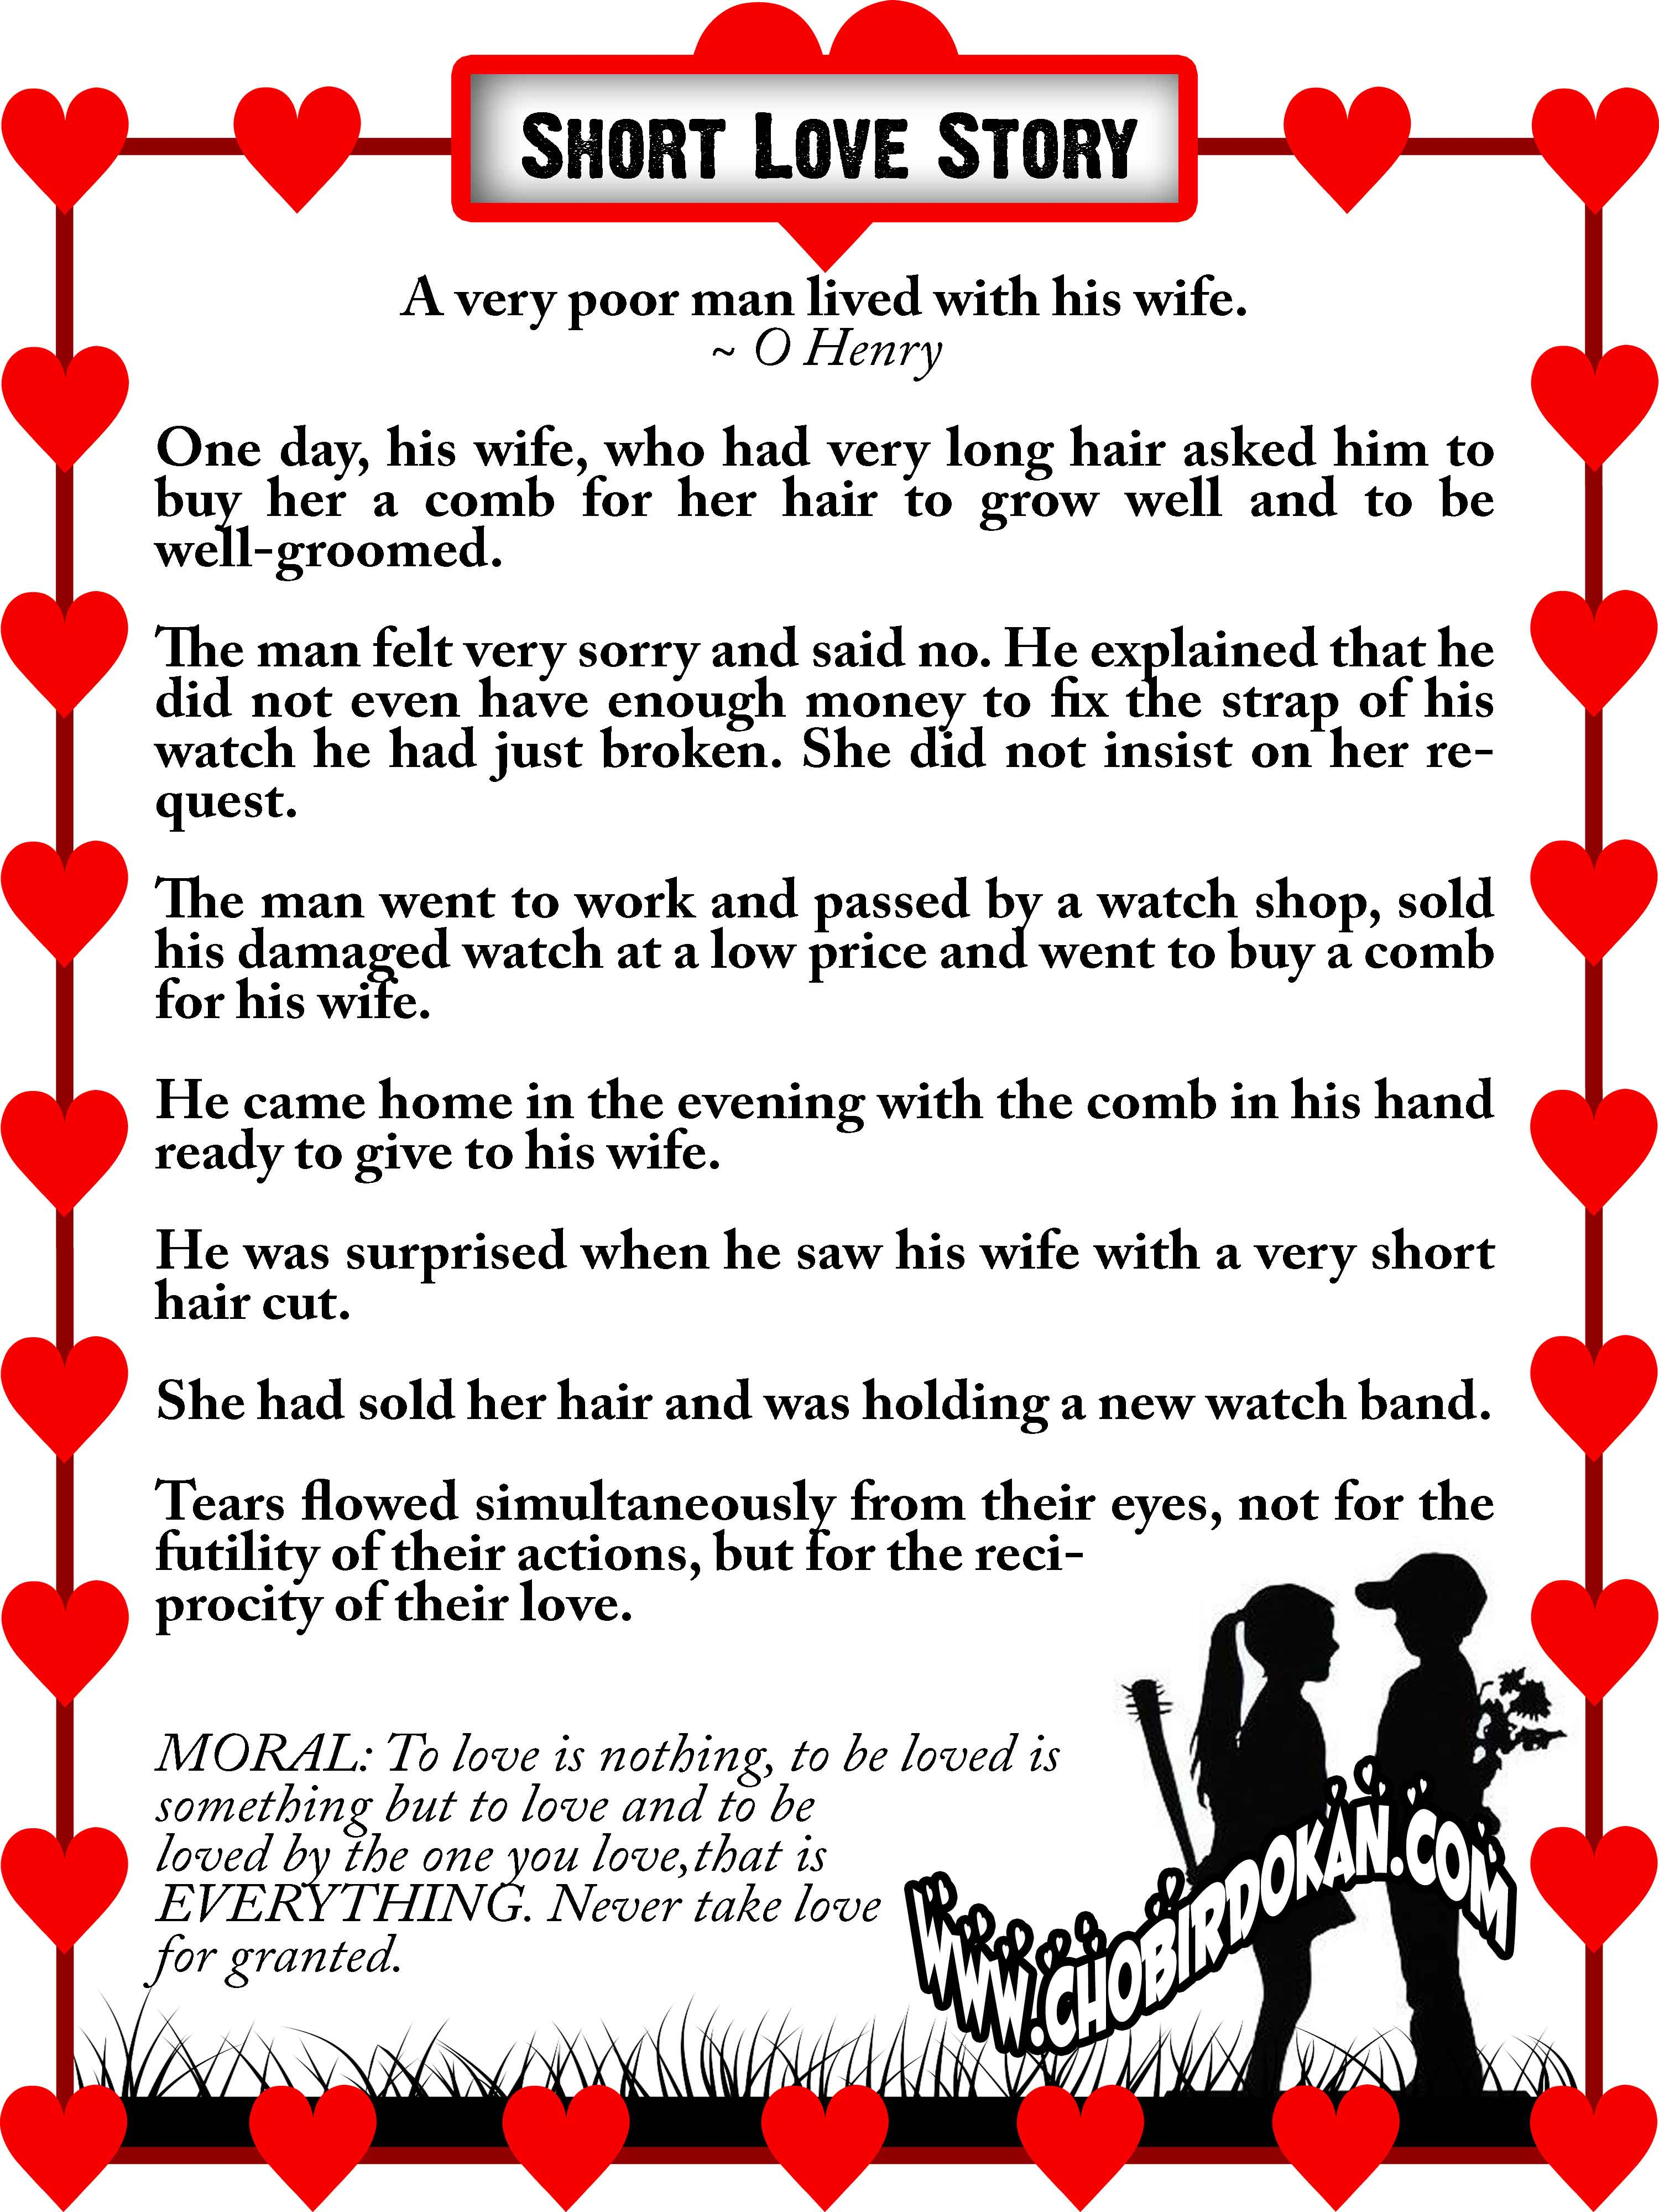 Funny dating short stories